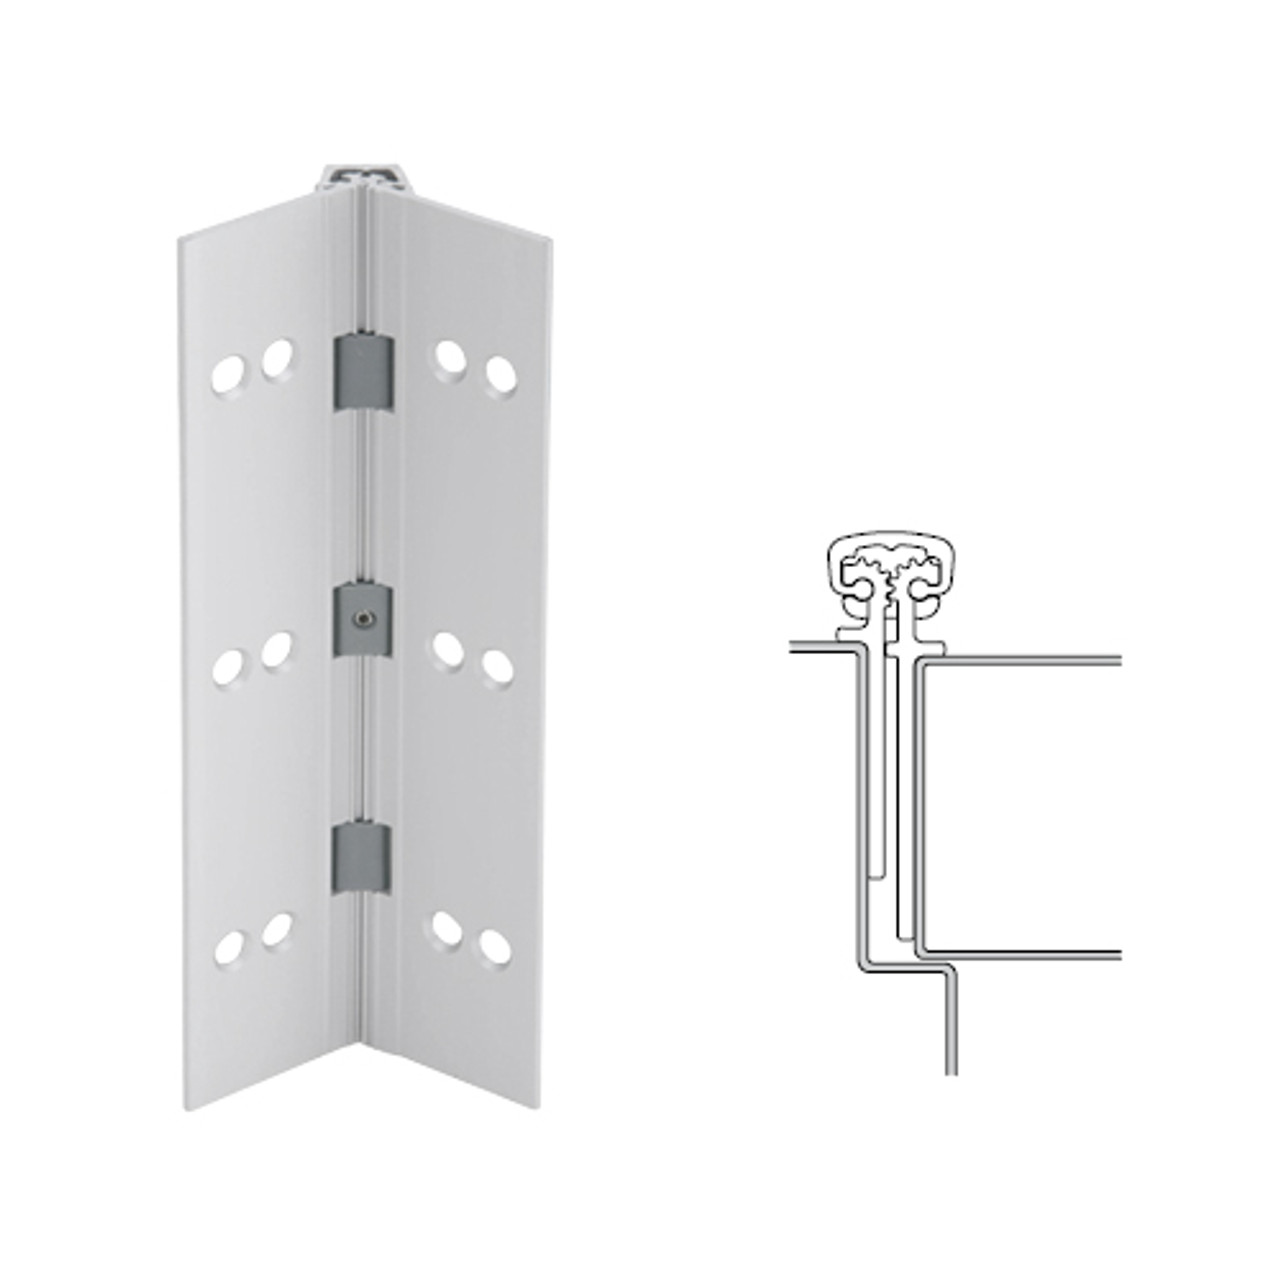 026XY-US28-85-SECWDHM IVES Full Mortise Continuous Geared Hinges with Security Screws - Hex Pin Drive in Satin Aluminum